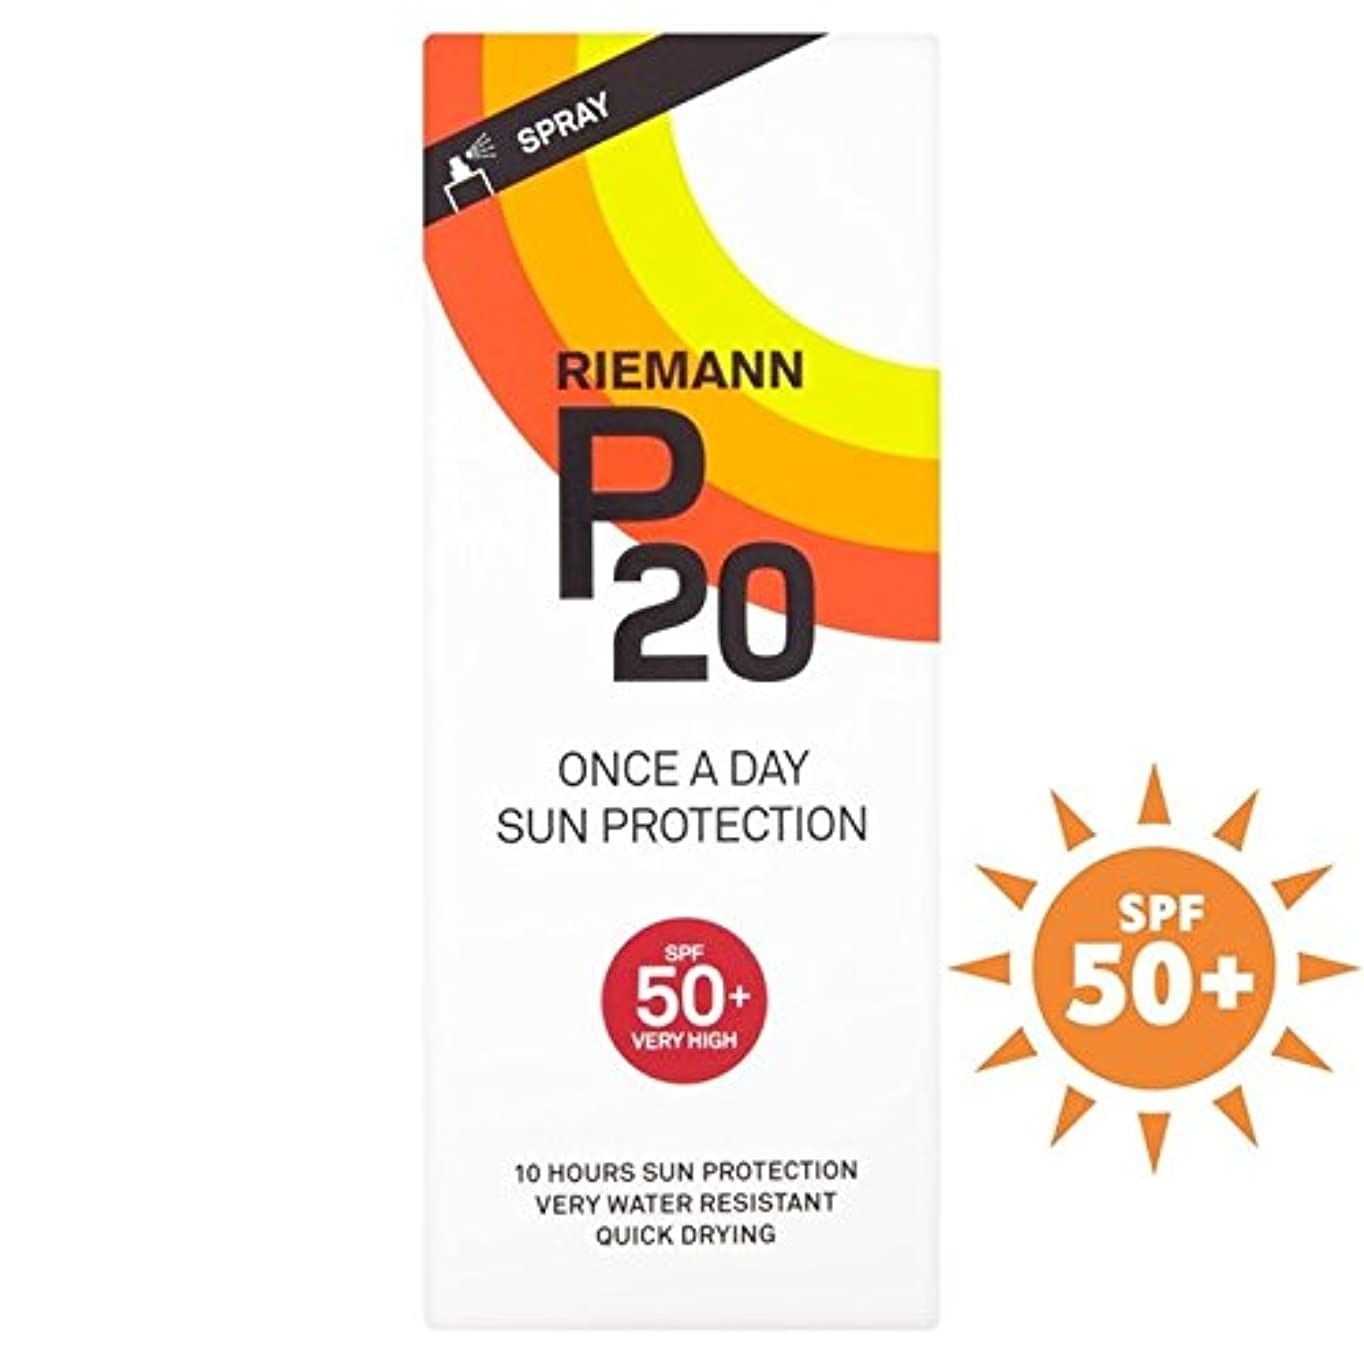 Riemann P20 SPF50+ 1 Day/10 Hour Protection 200ml (Pack of 6) - リーマン20の50 + 1日/ 10時間の保護200ミリリットル x6 [並行輸入品]